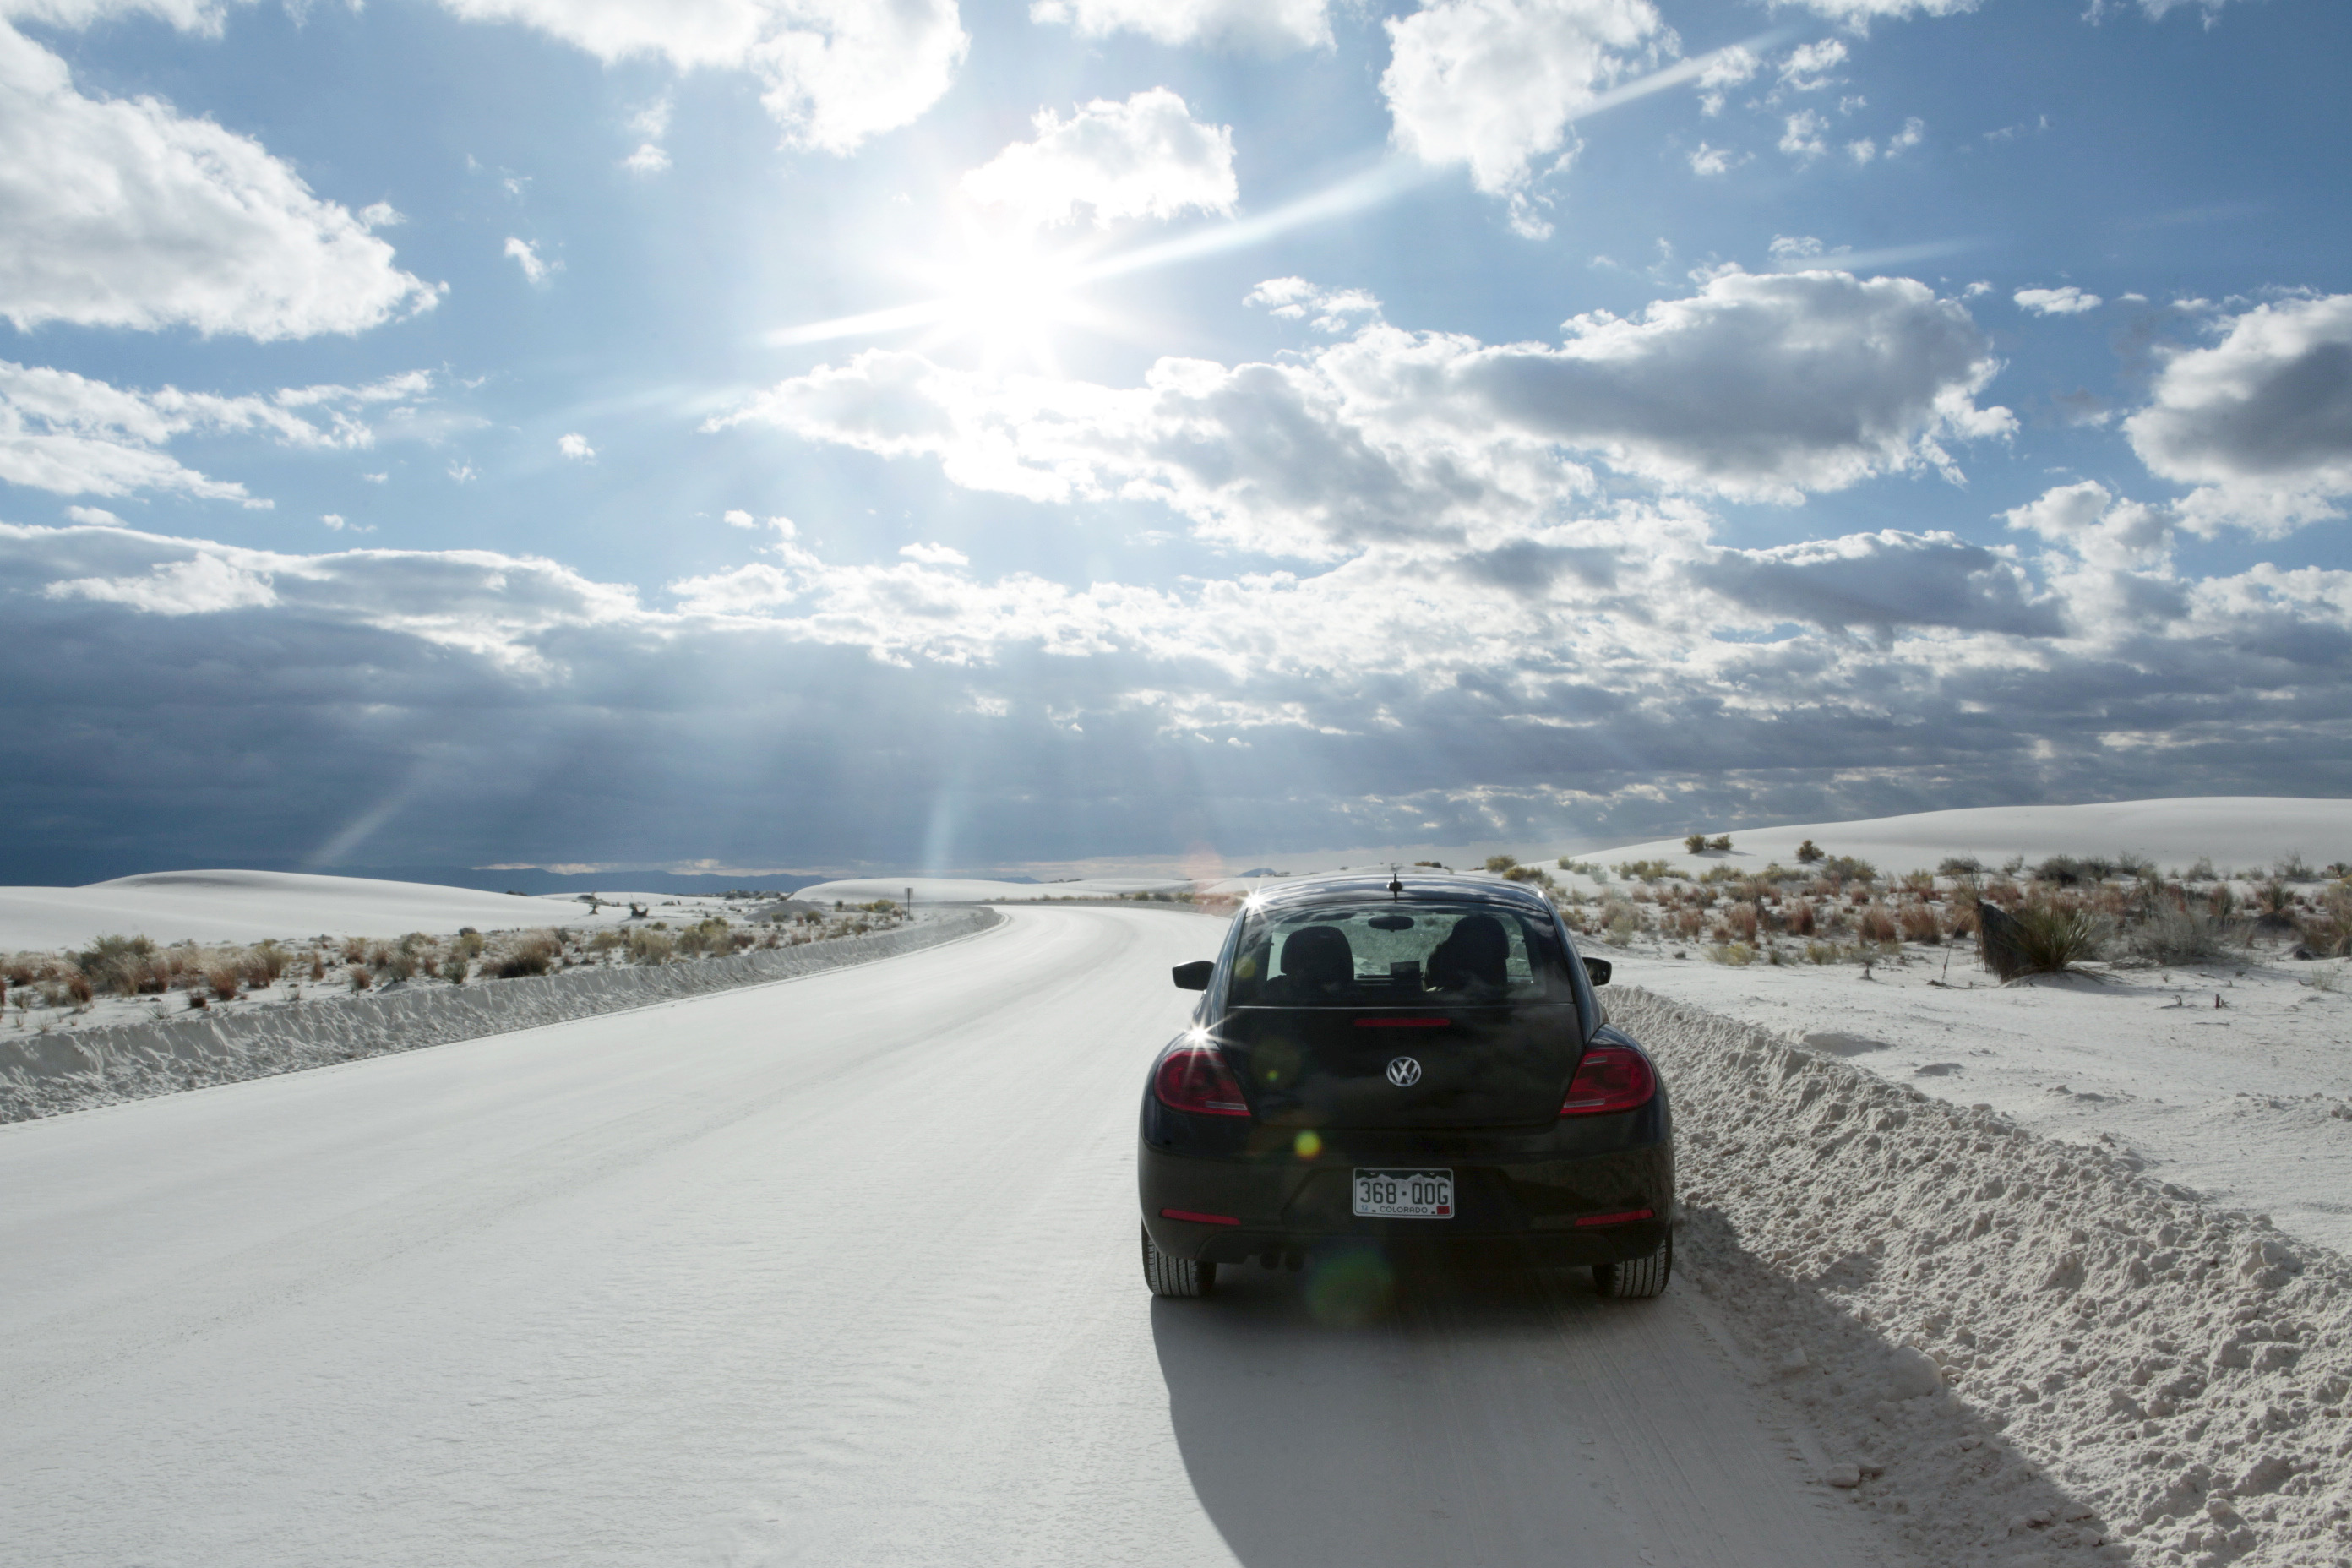 Our rental VW Bug tackles the powdery terrain of White Sands National